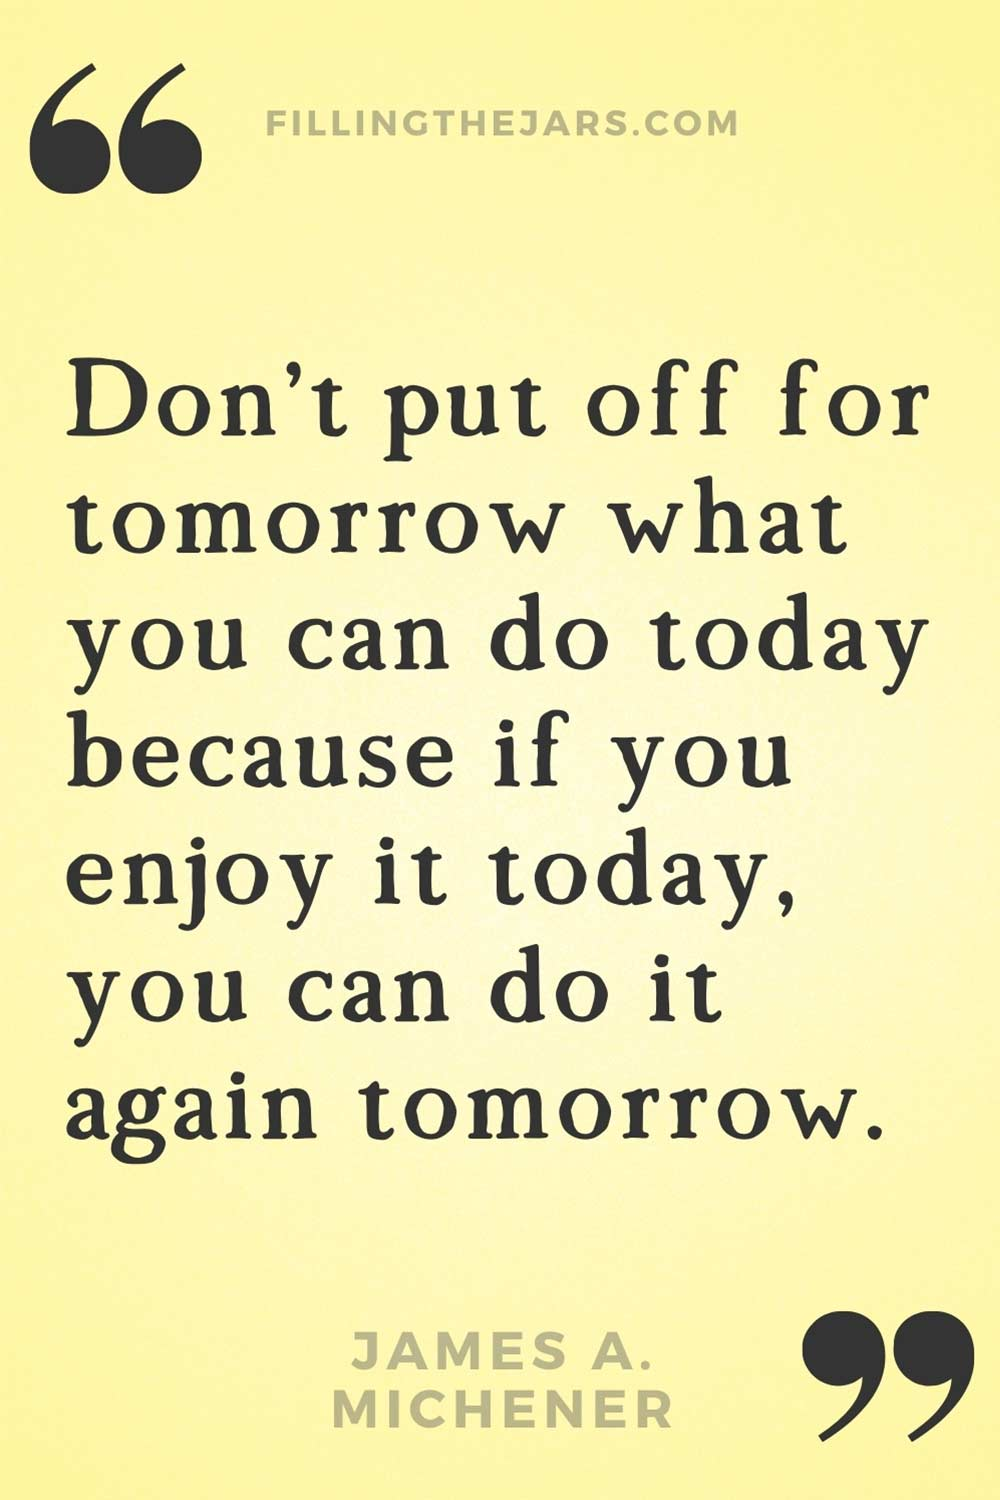 James A Michener if you enjoy it today you can do it again tomorrow quote on yellow background.